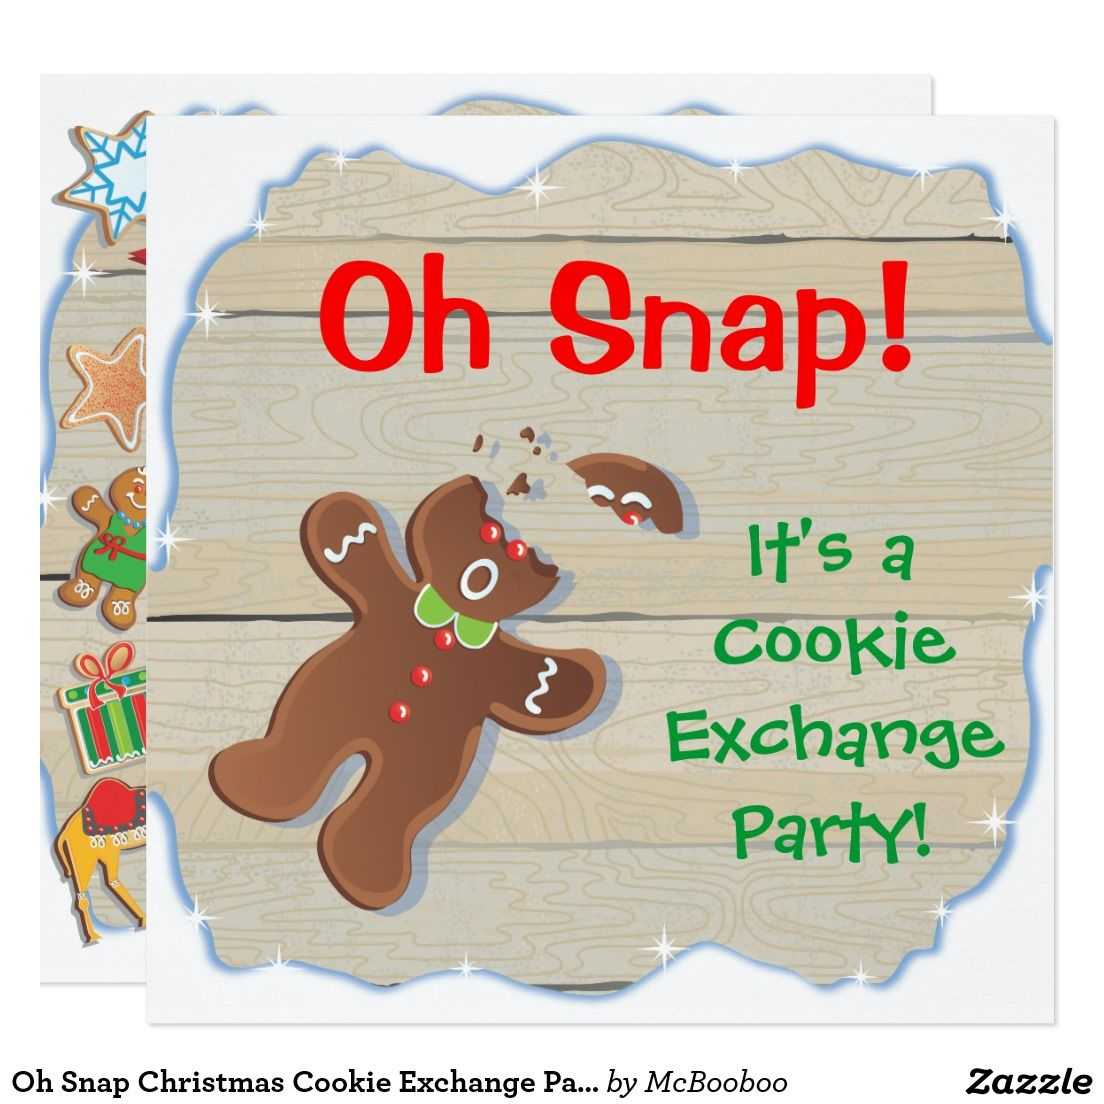 Oh Snap Christmas Cookie Exchange Party Invitation   Zazzle with regard to Cookie Exchange Recipe Card Template